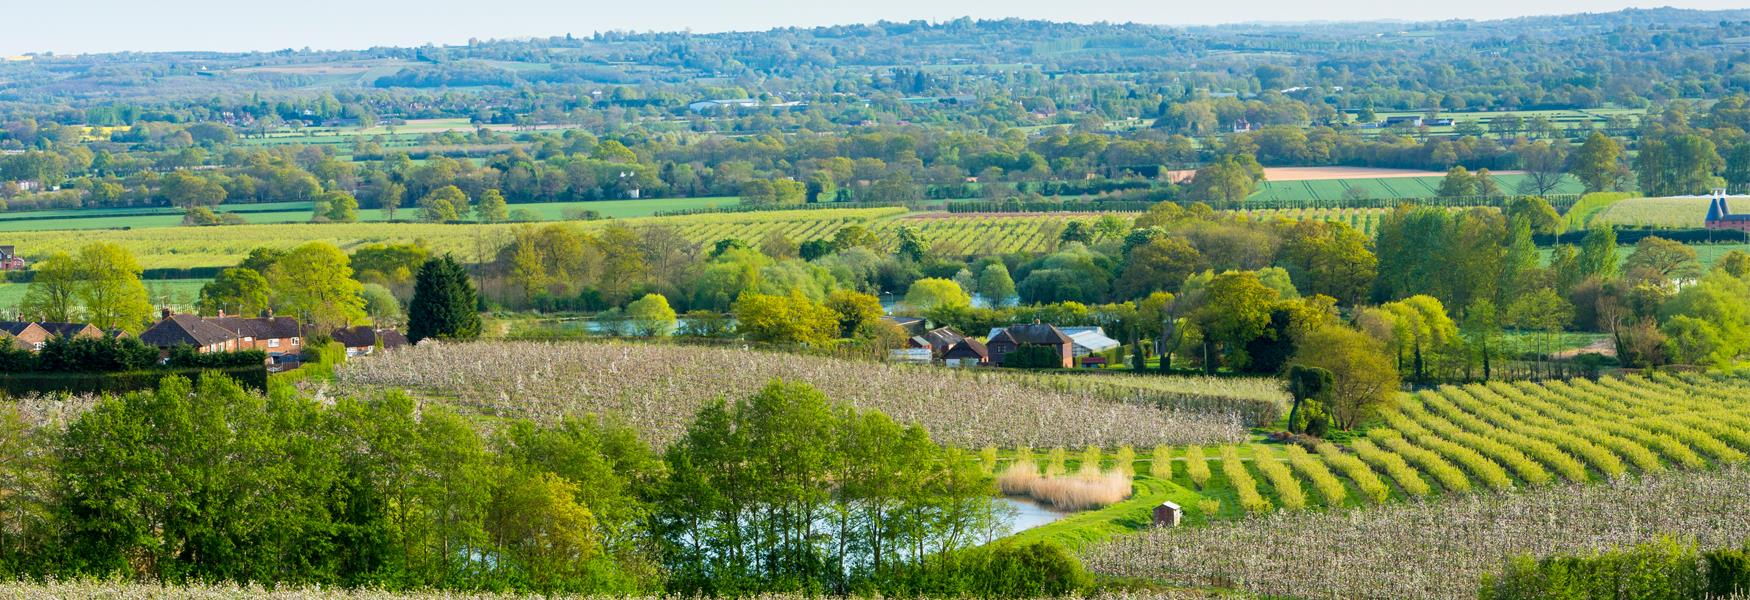 Orchards in the Kent countryside, Linton